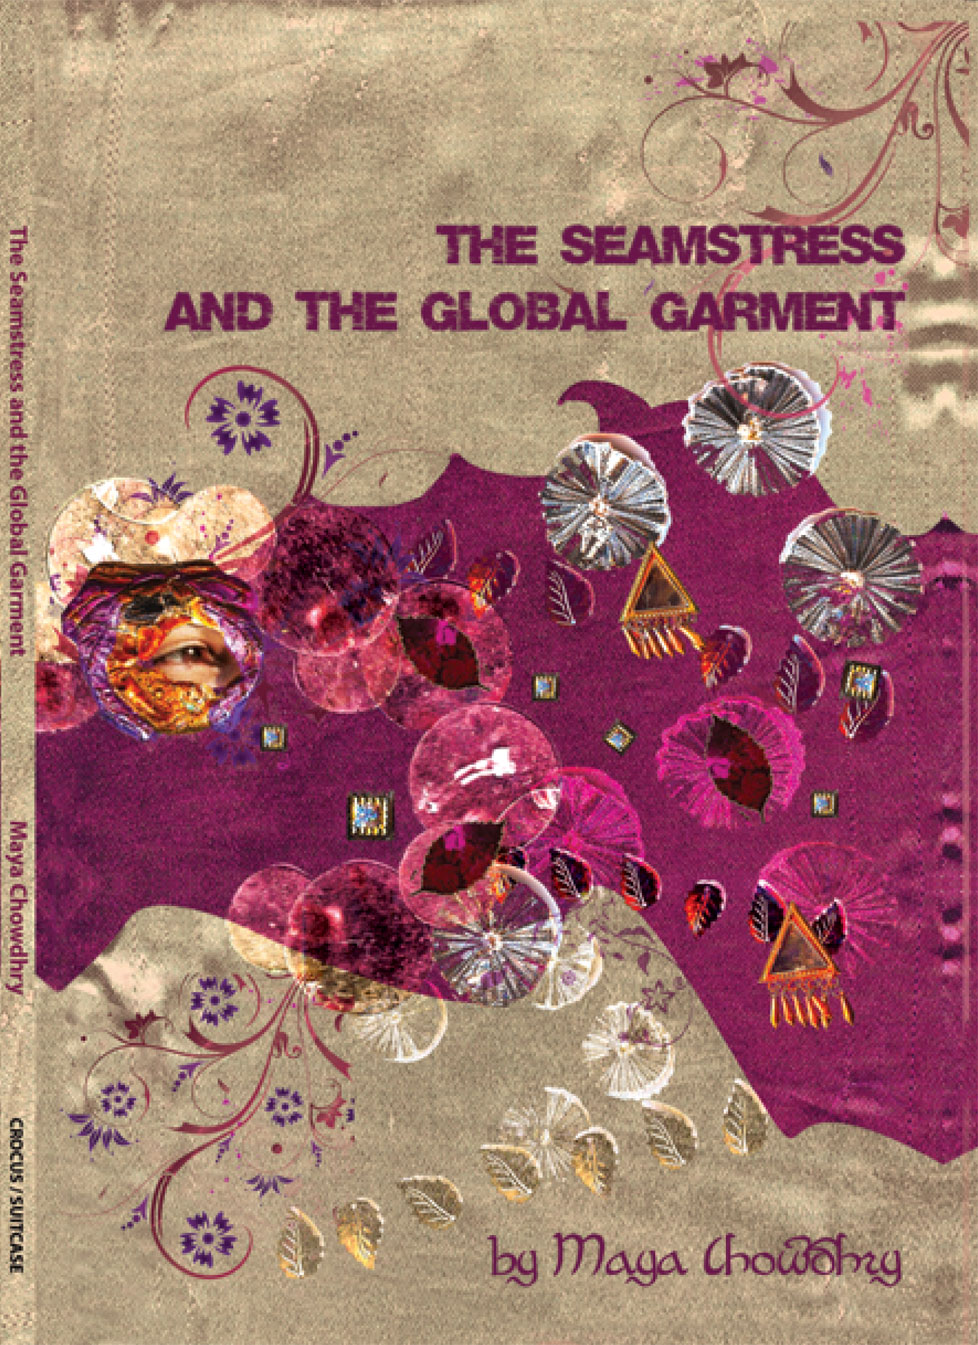 The Seamstress and the Global Garment